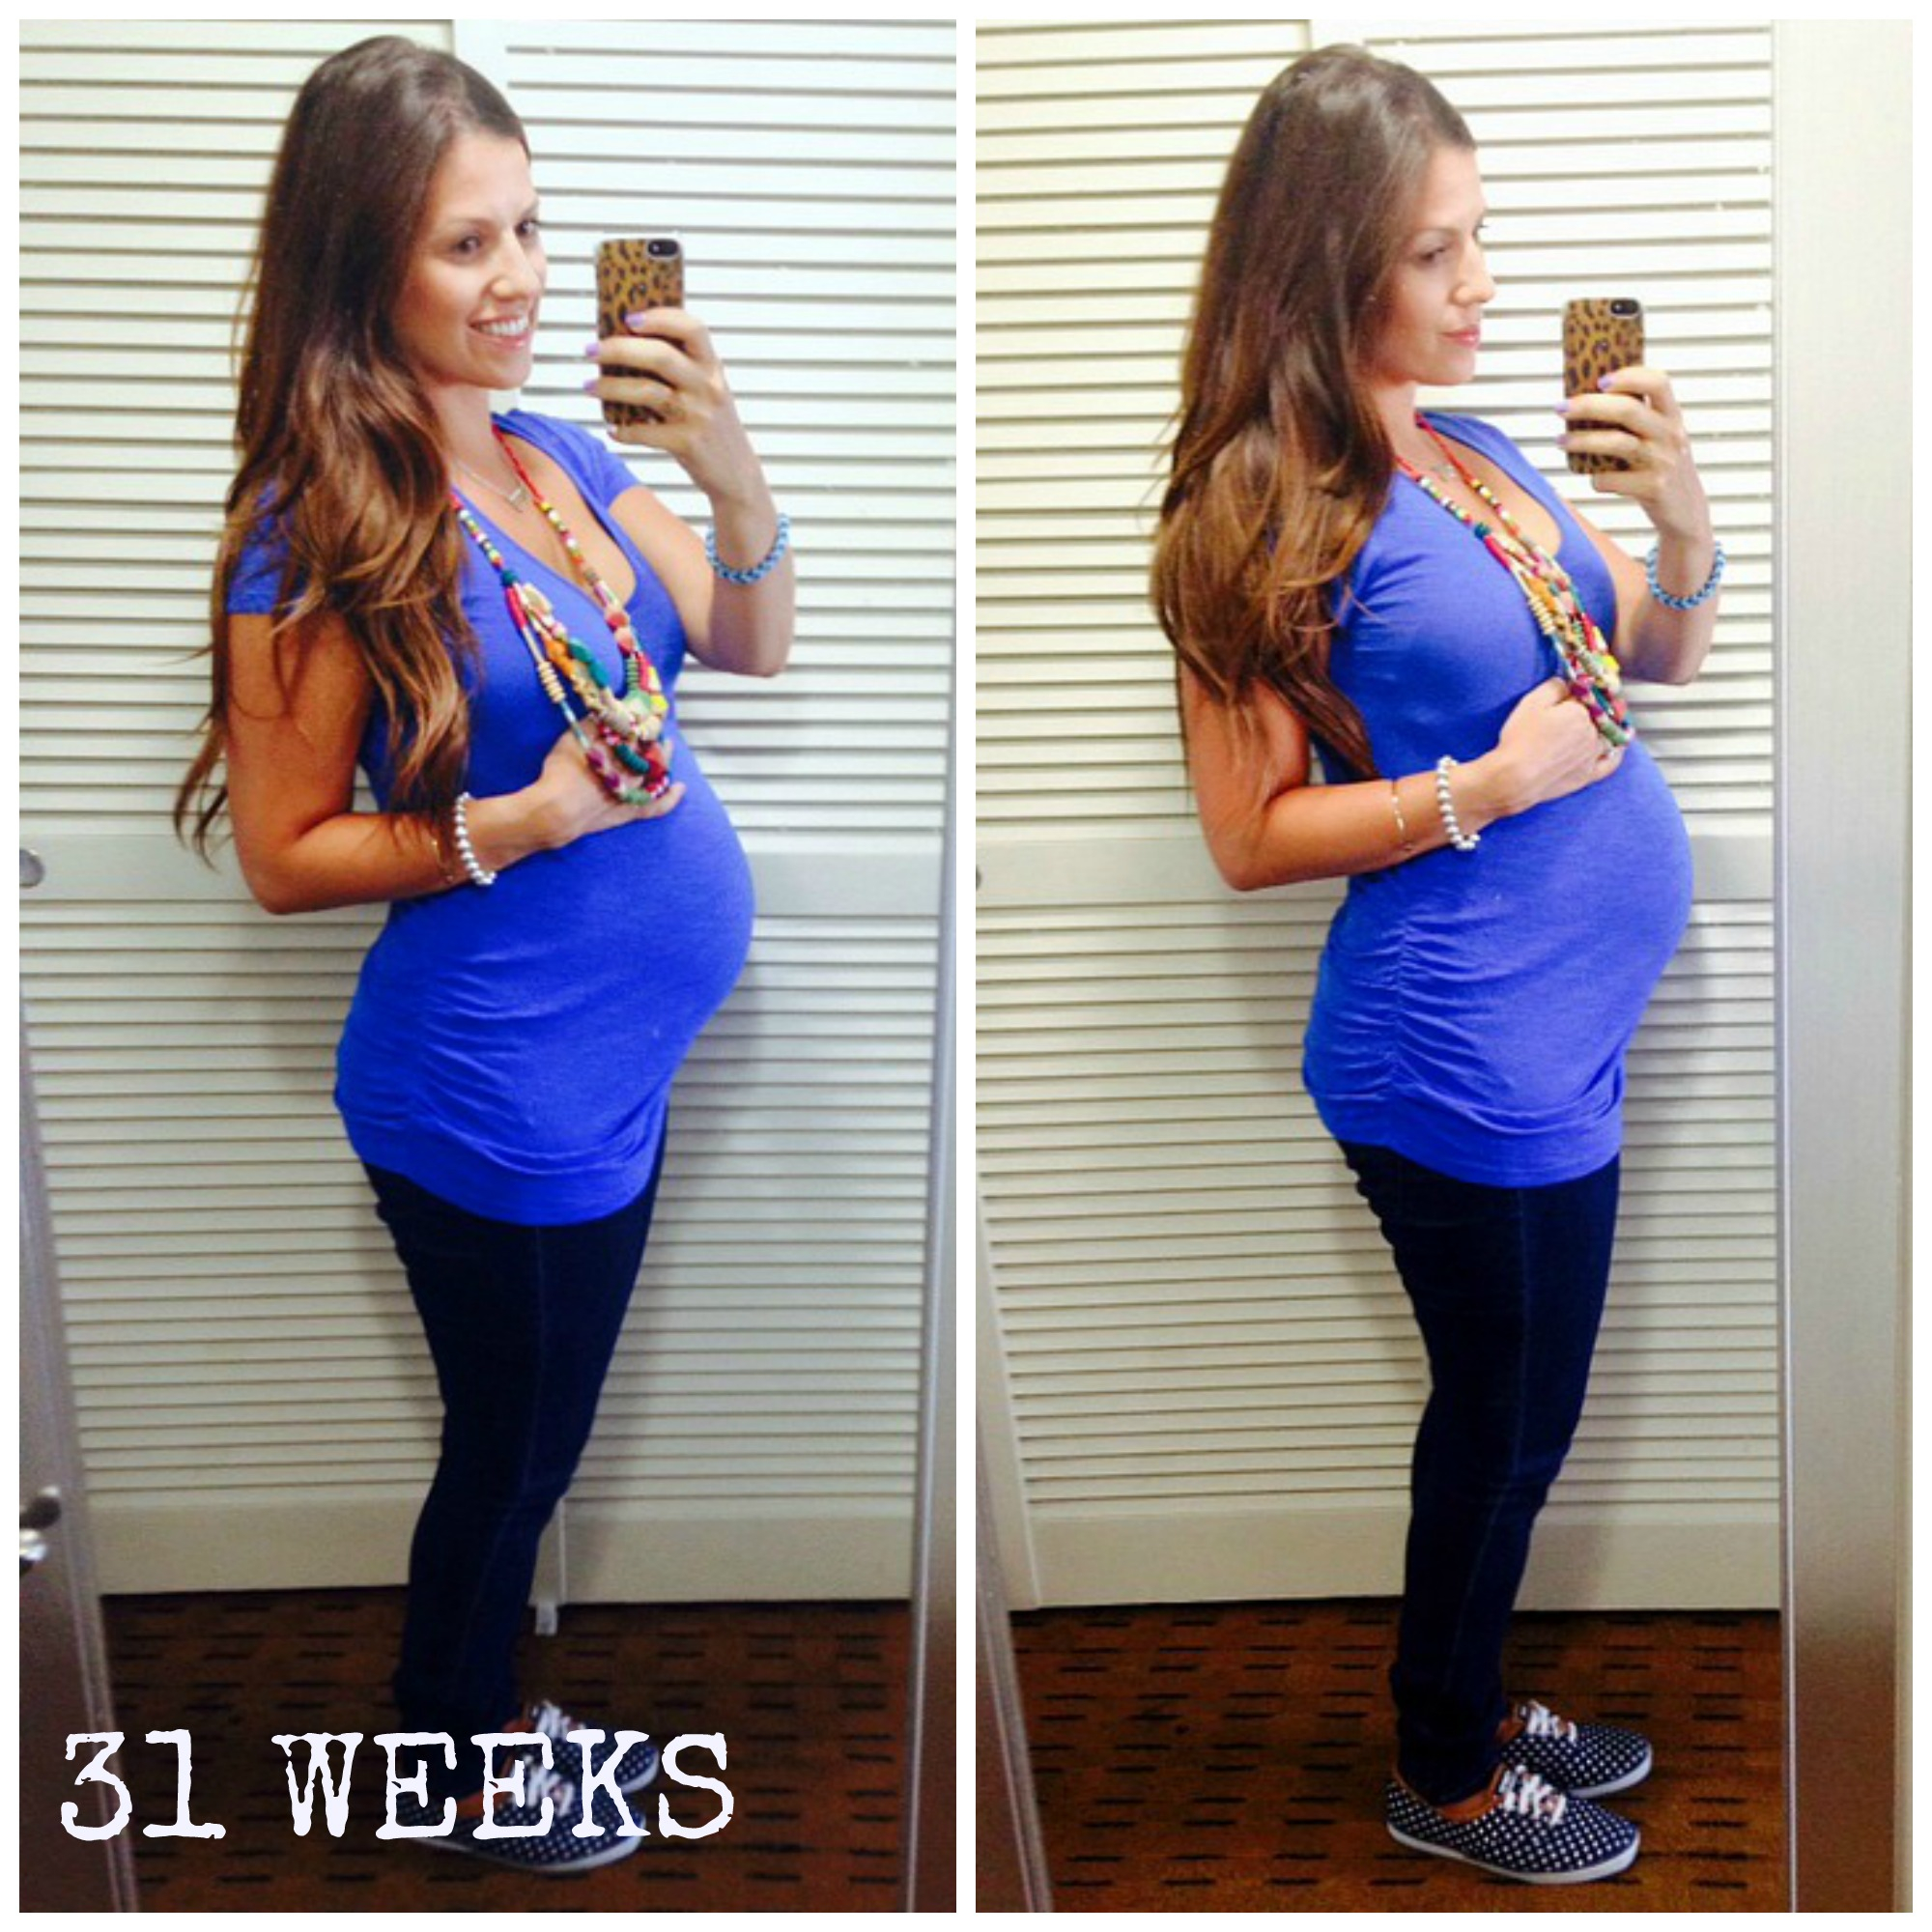 Sharp Constant Period-like Cramping at 31 weeks - The Bump